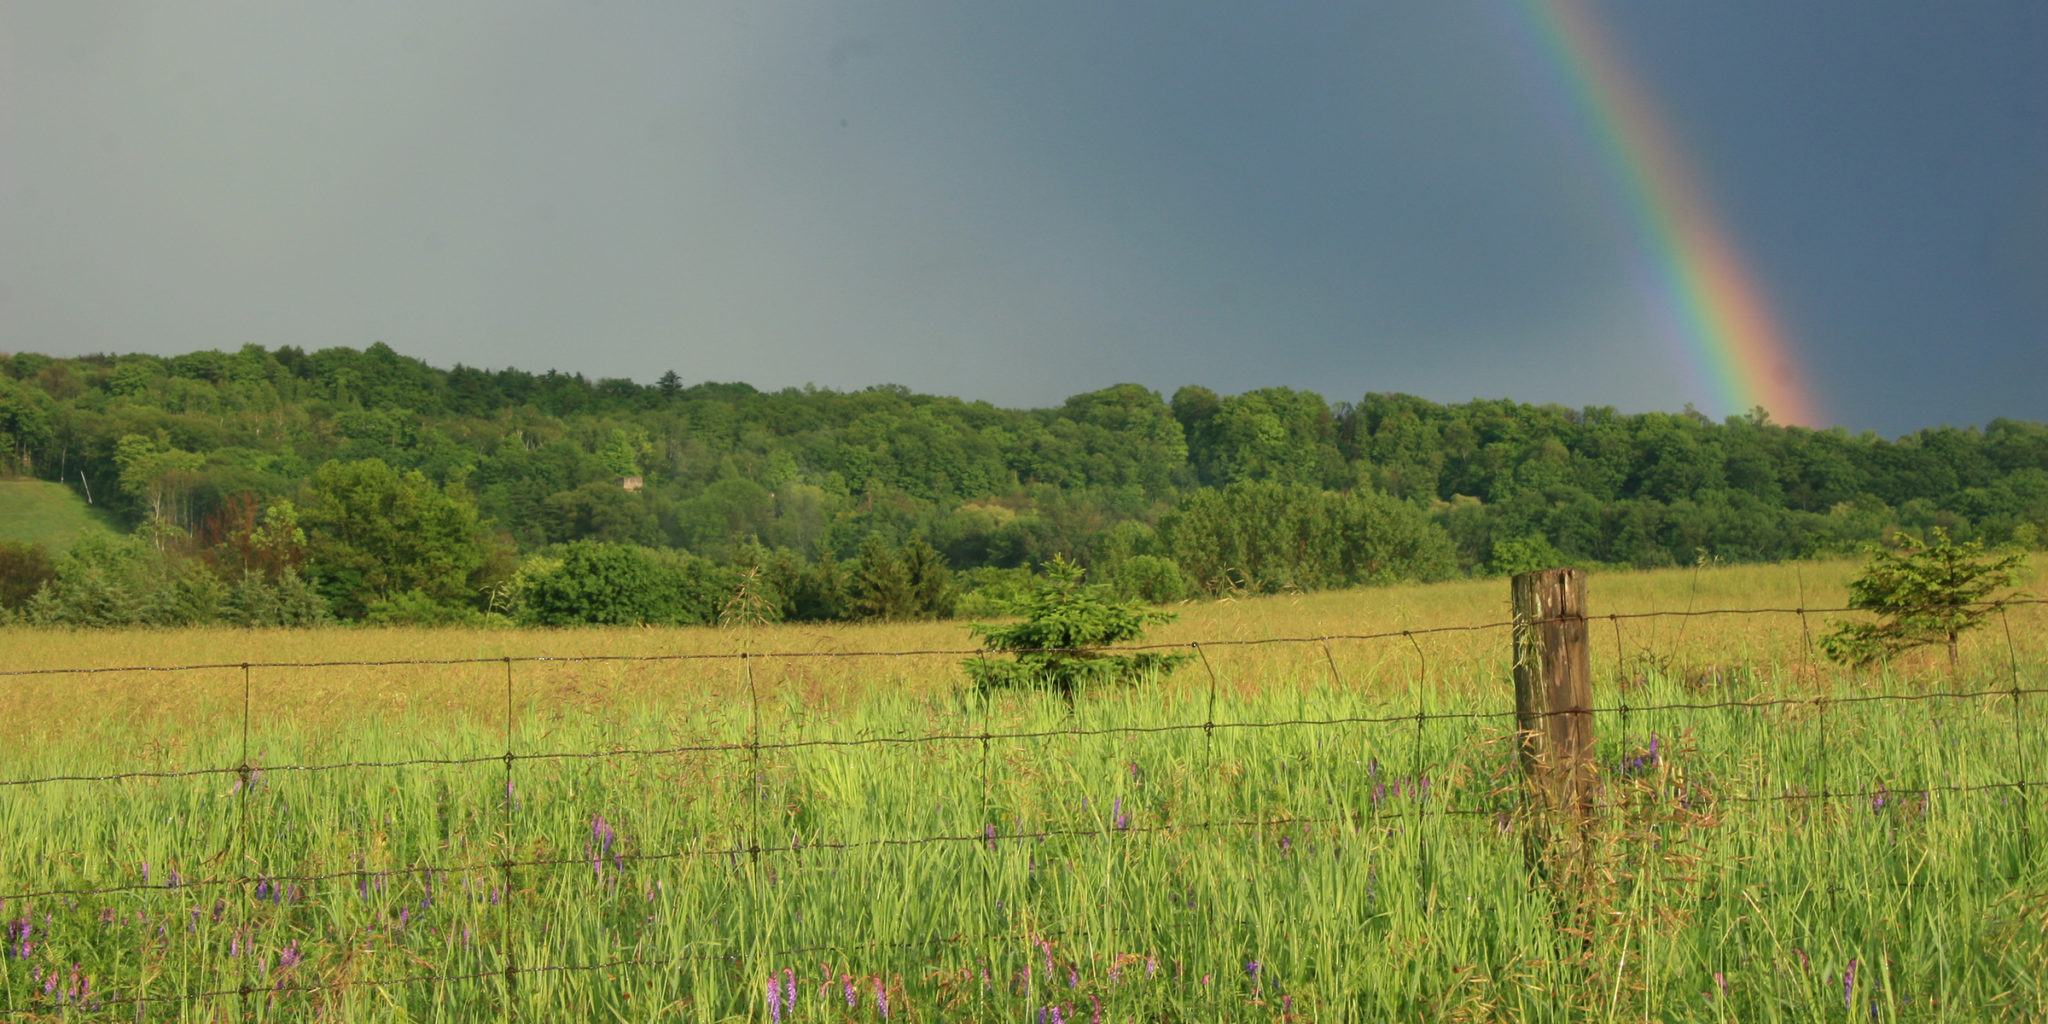 farm field, forests and rainbow in Ontario